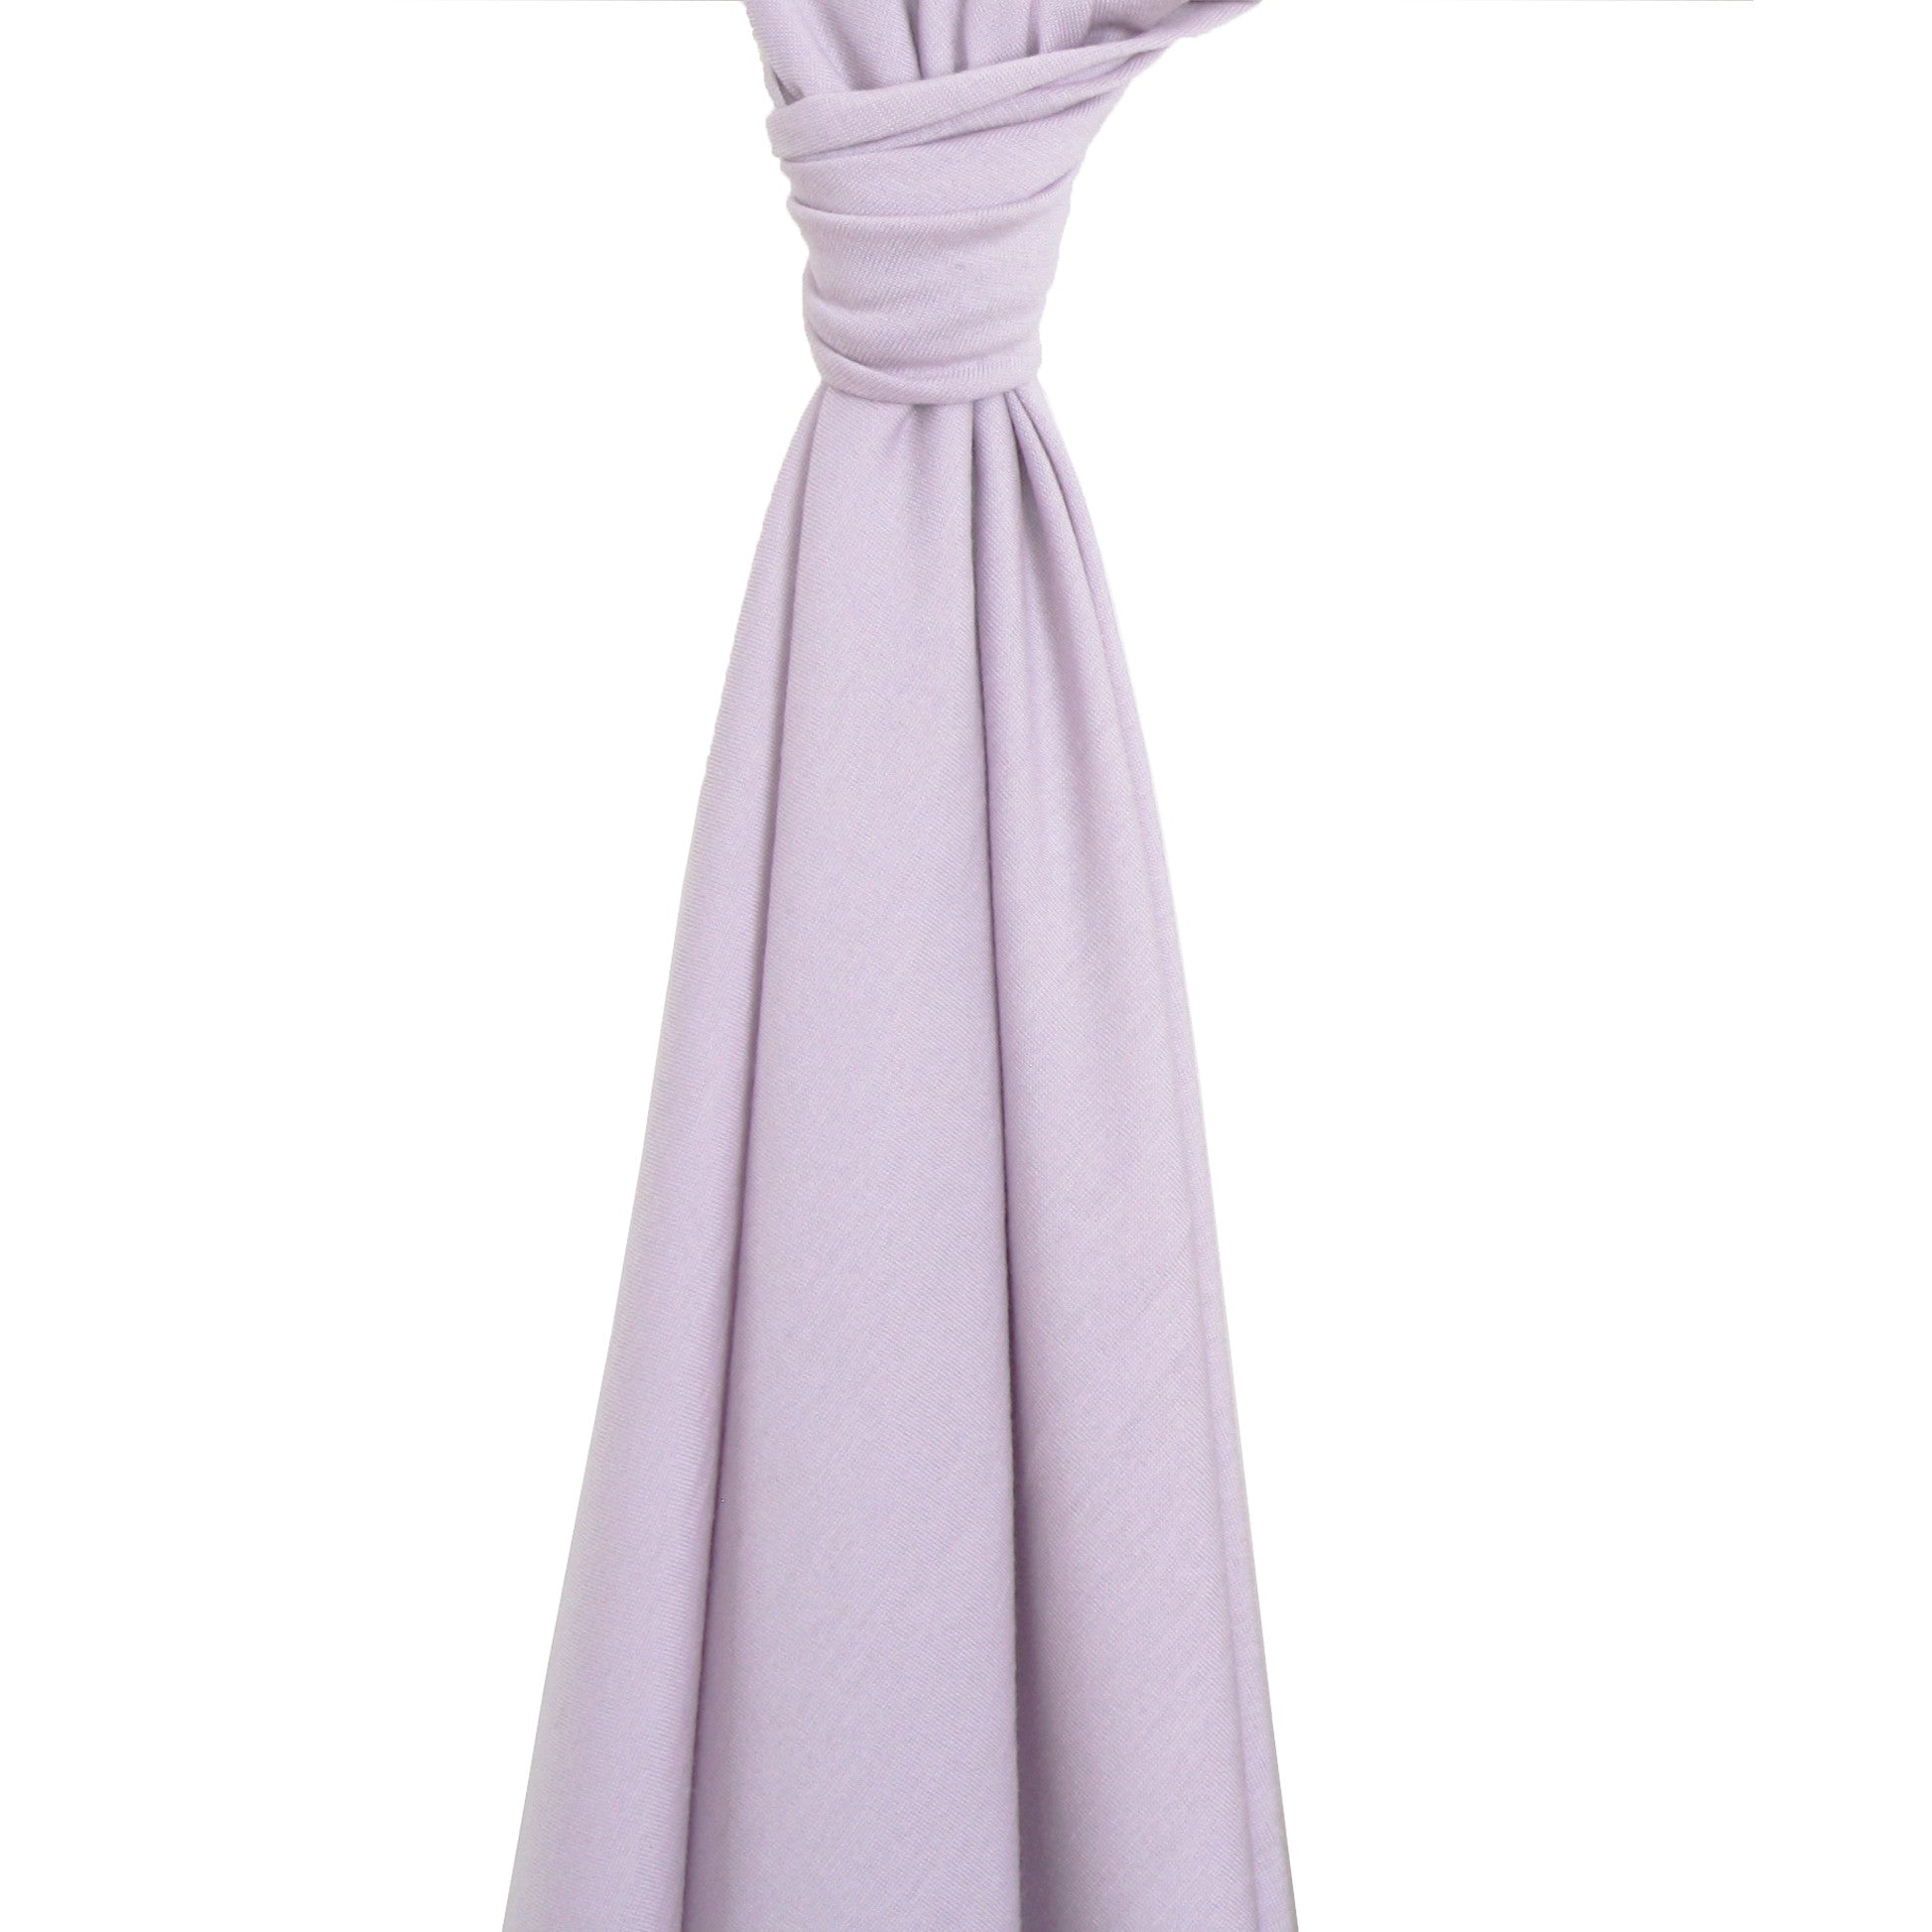 Swaddle Blanket, Merino Wool, Newborn to 3 Months, Lilac